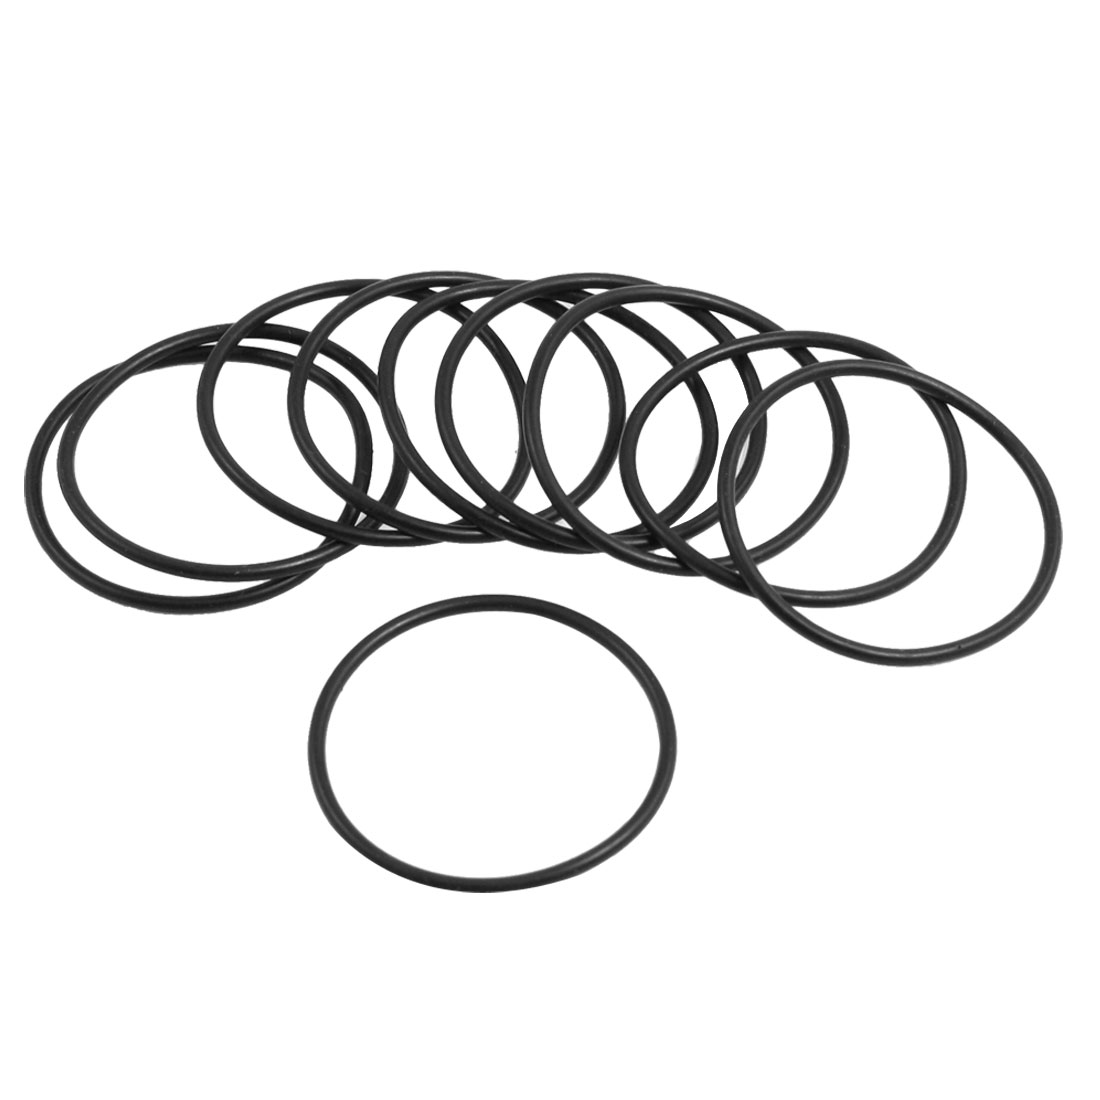 10-Pcs-Oil-Seal-O-Rings-Black-Nitrile-Rubber-30mm-OD-1-8mm-Thickness